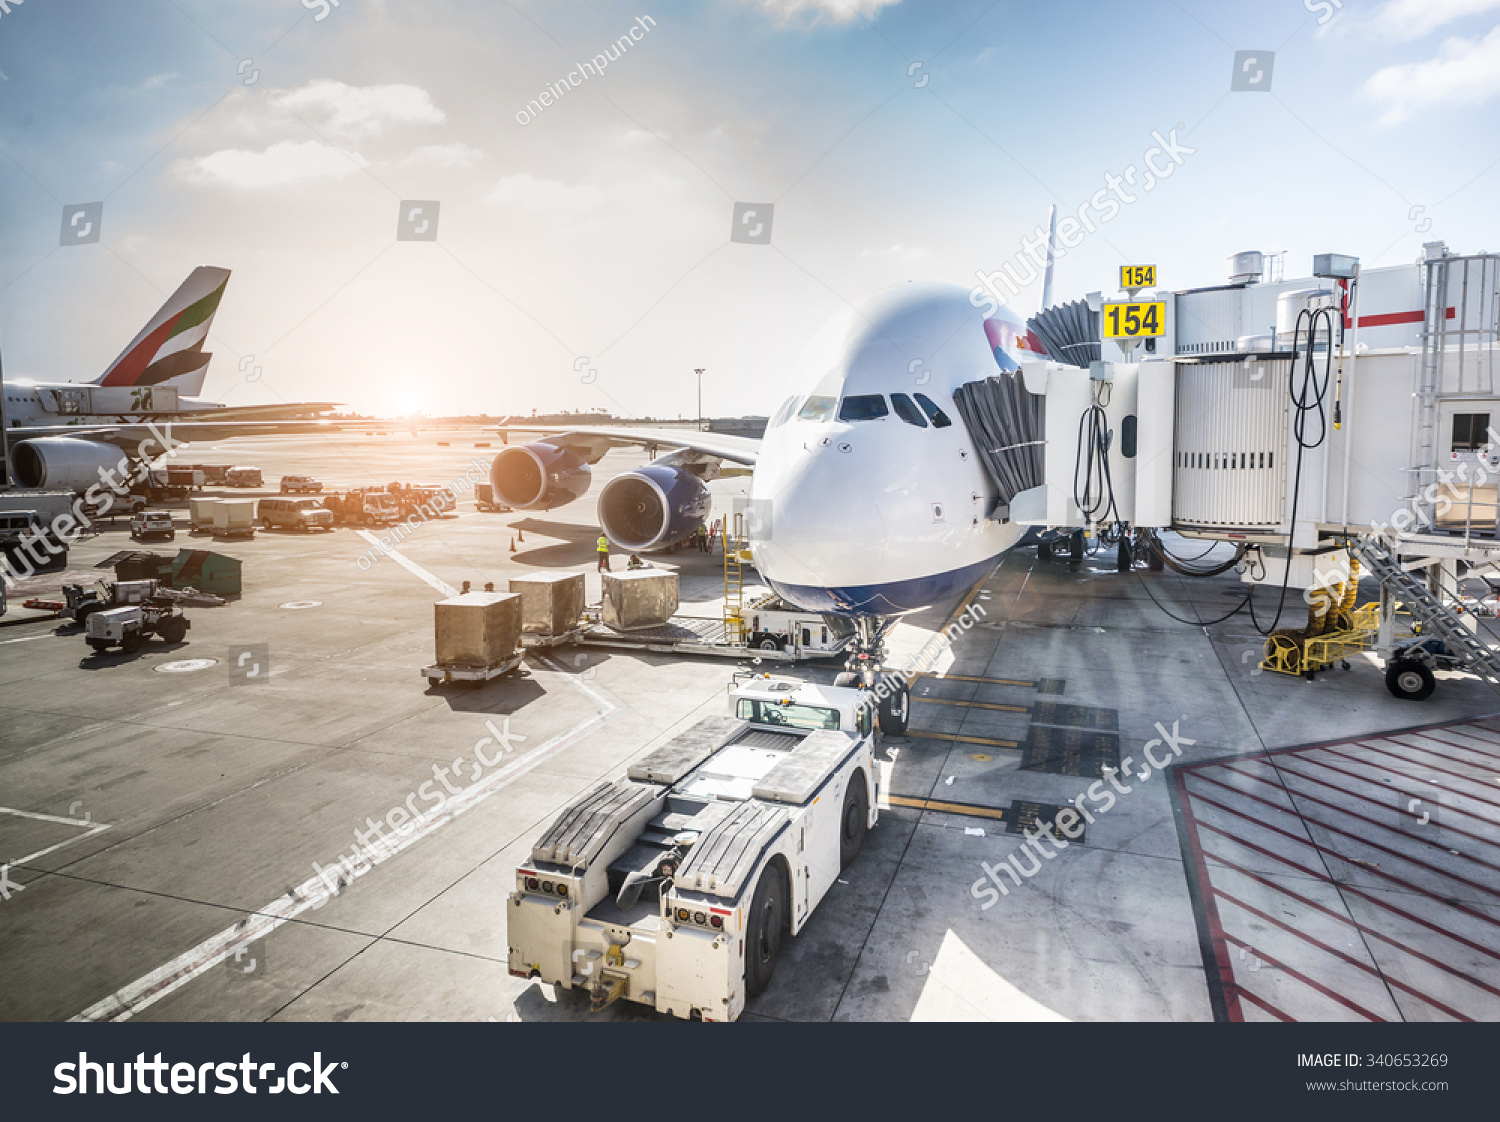 stock-photo-airplane-ready-for-boarding-in-a-airport-hub-340653269